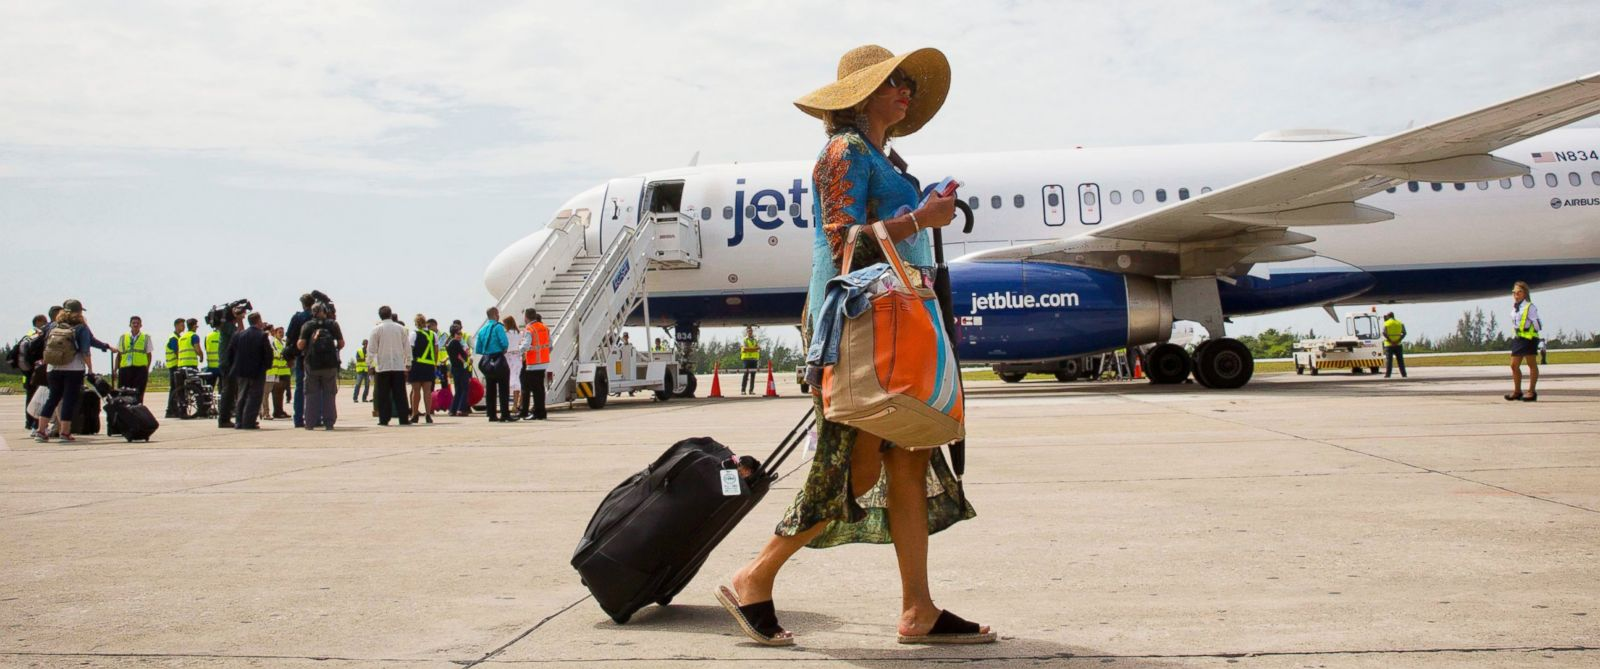 PHOTO: Passengers deplane from JetBlue flight 387, in Santa Clara, Cuba, Aug. 31, 2016. The flight was the first commercial flight between the U.S. and Cuba in more than a half century,